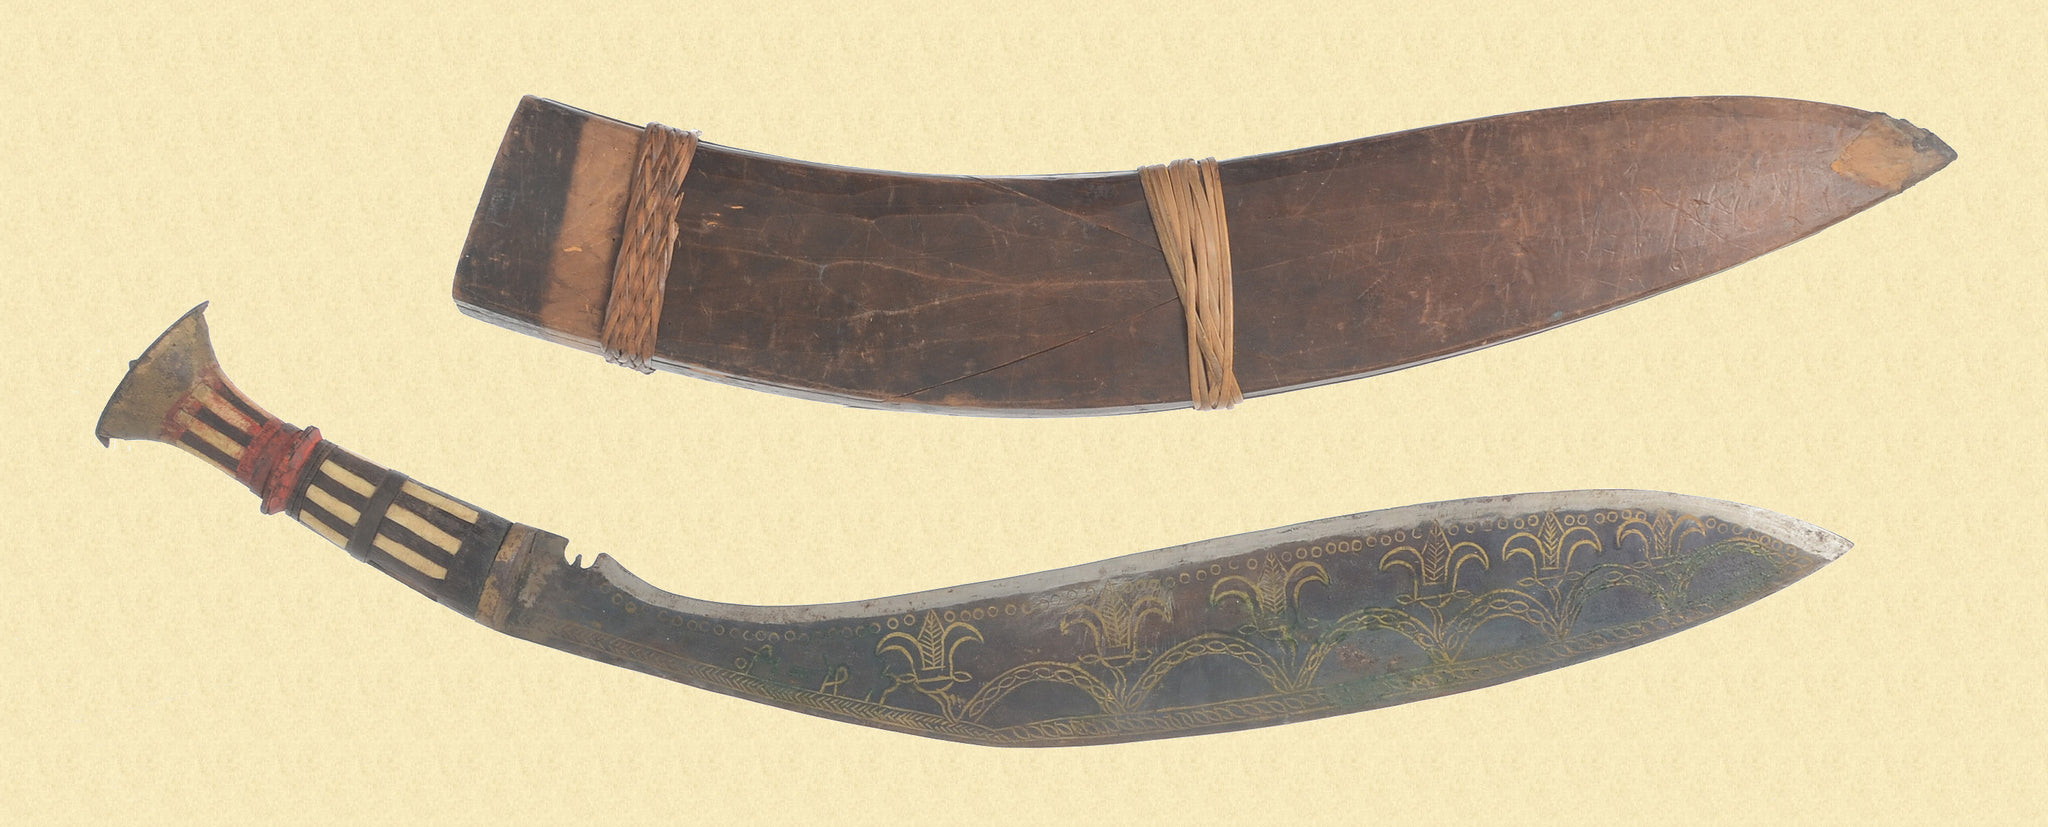 LAOTIAN CEREMONIAL KNIFE